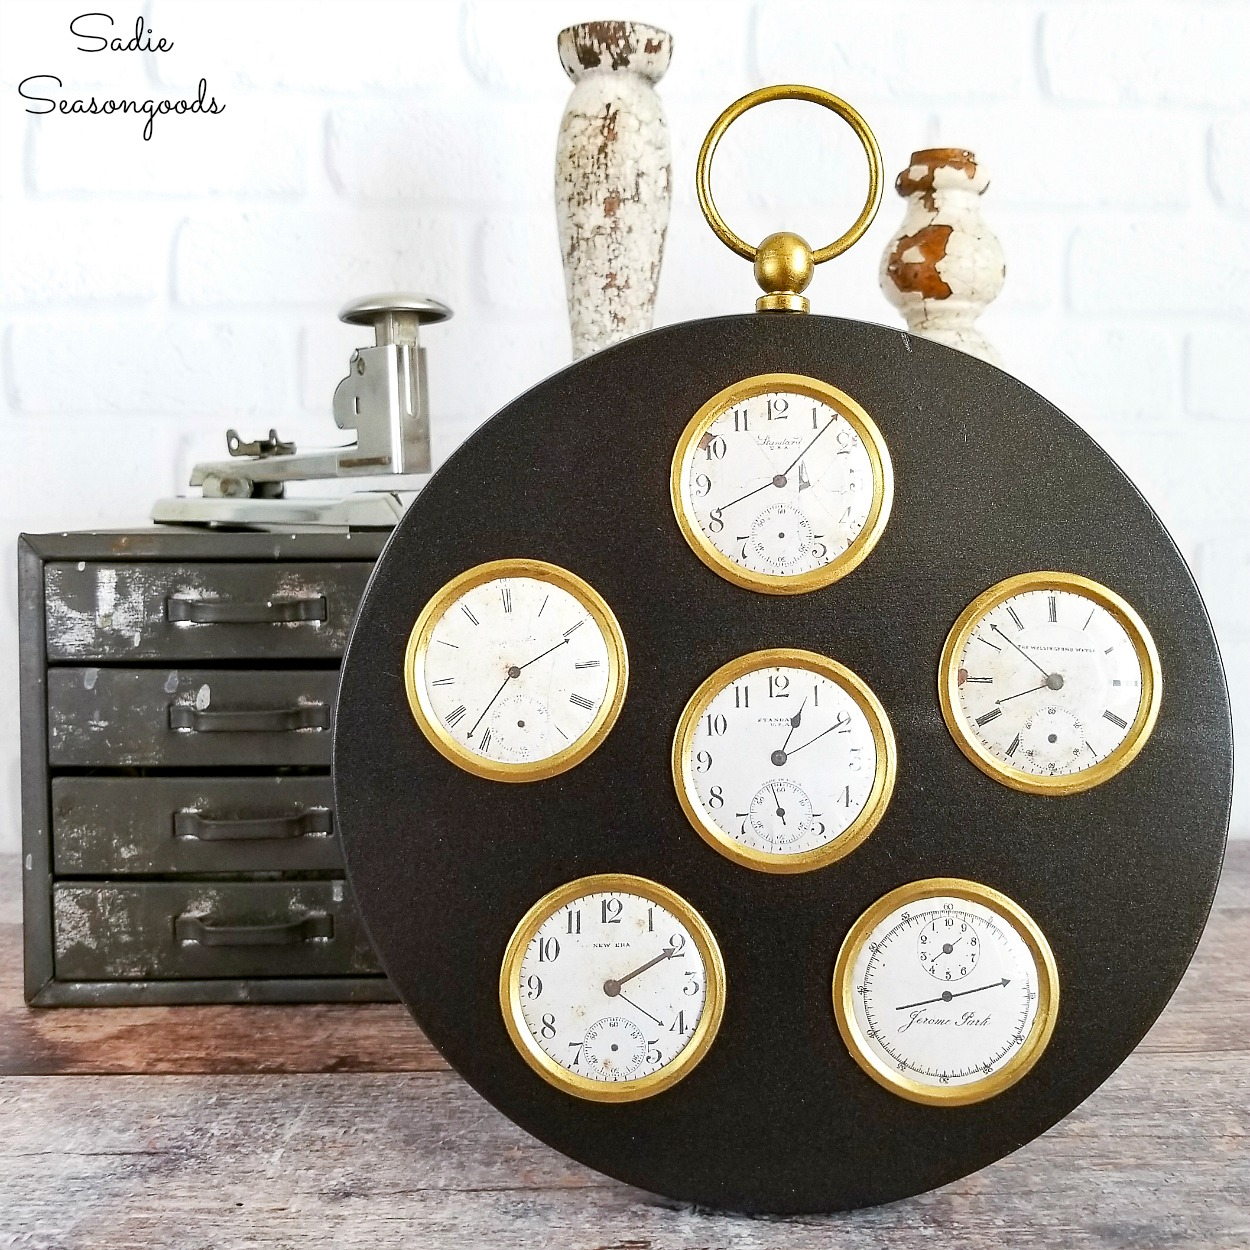 Steampunk wall art or industrial home decor by upcycling a picture frame into a vintage pocket watch